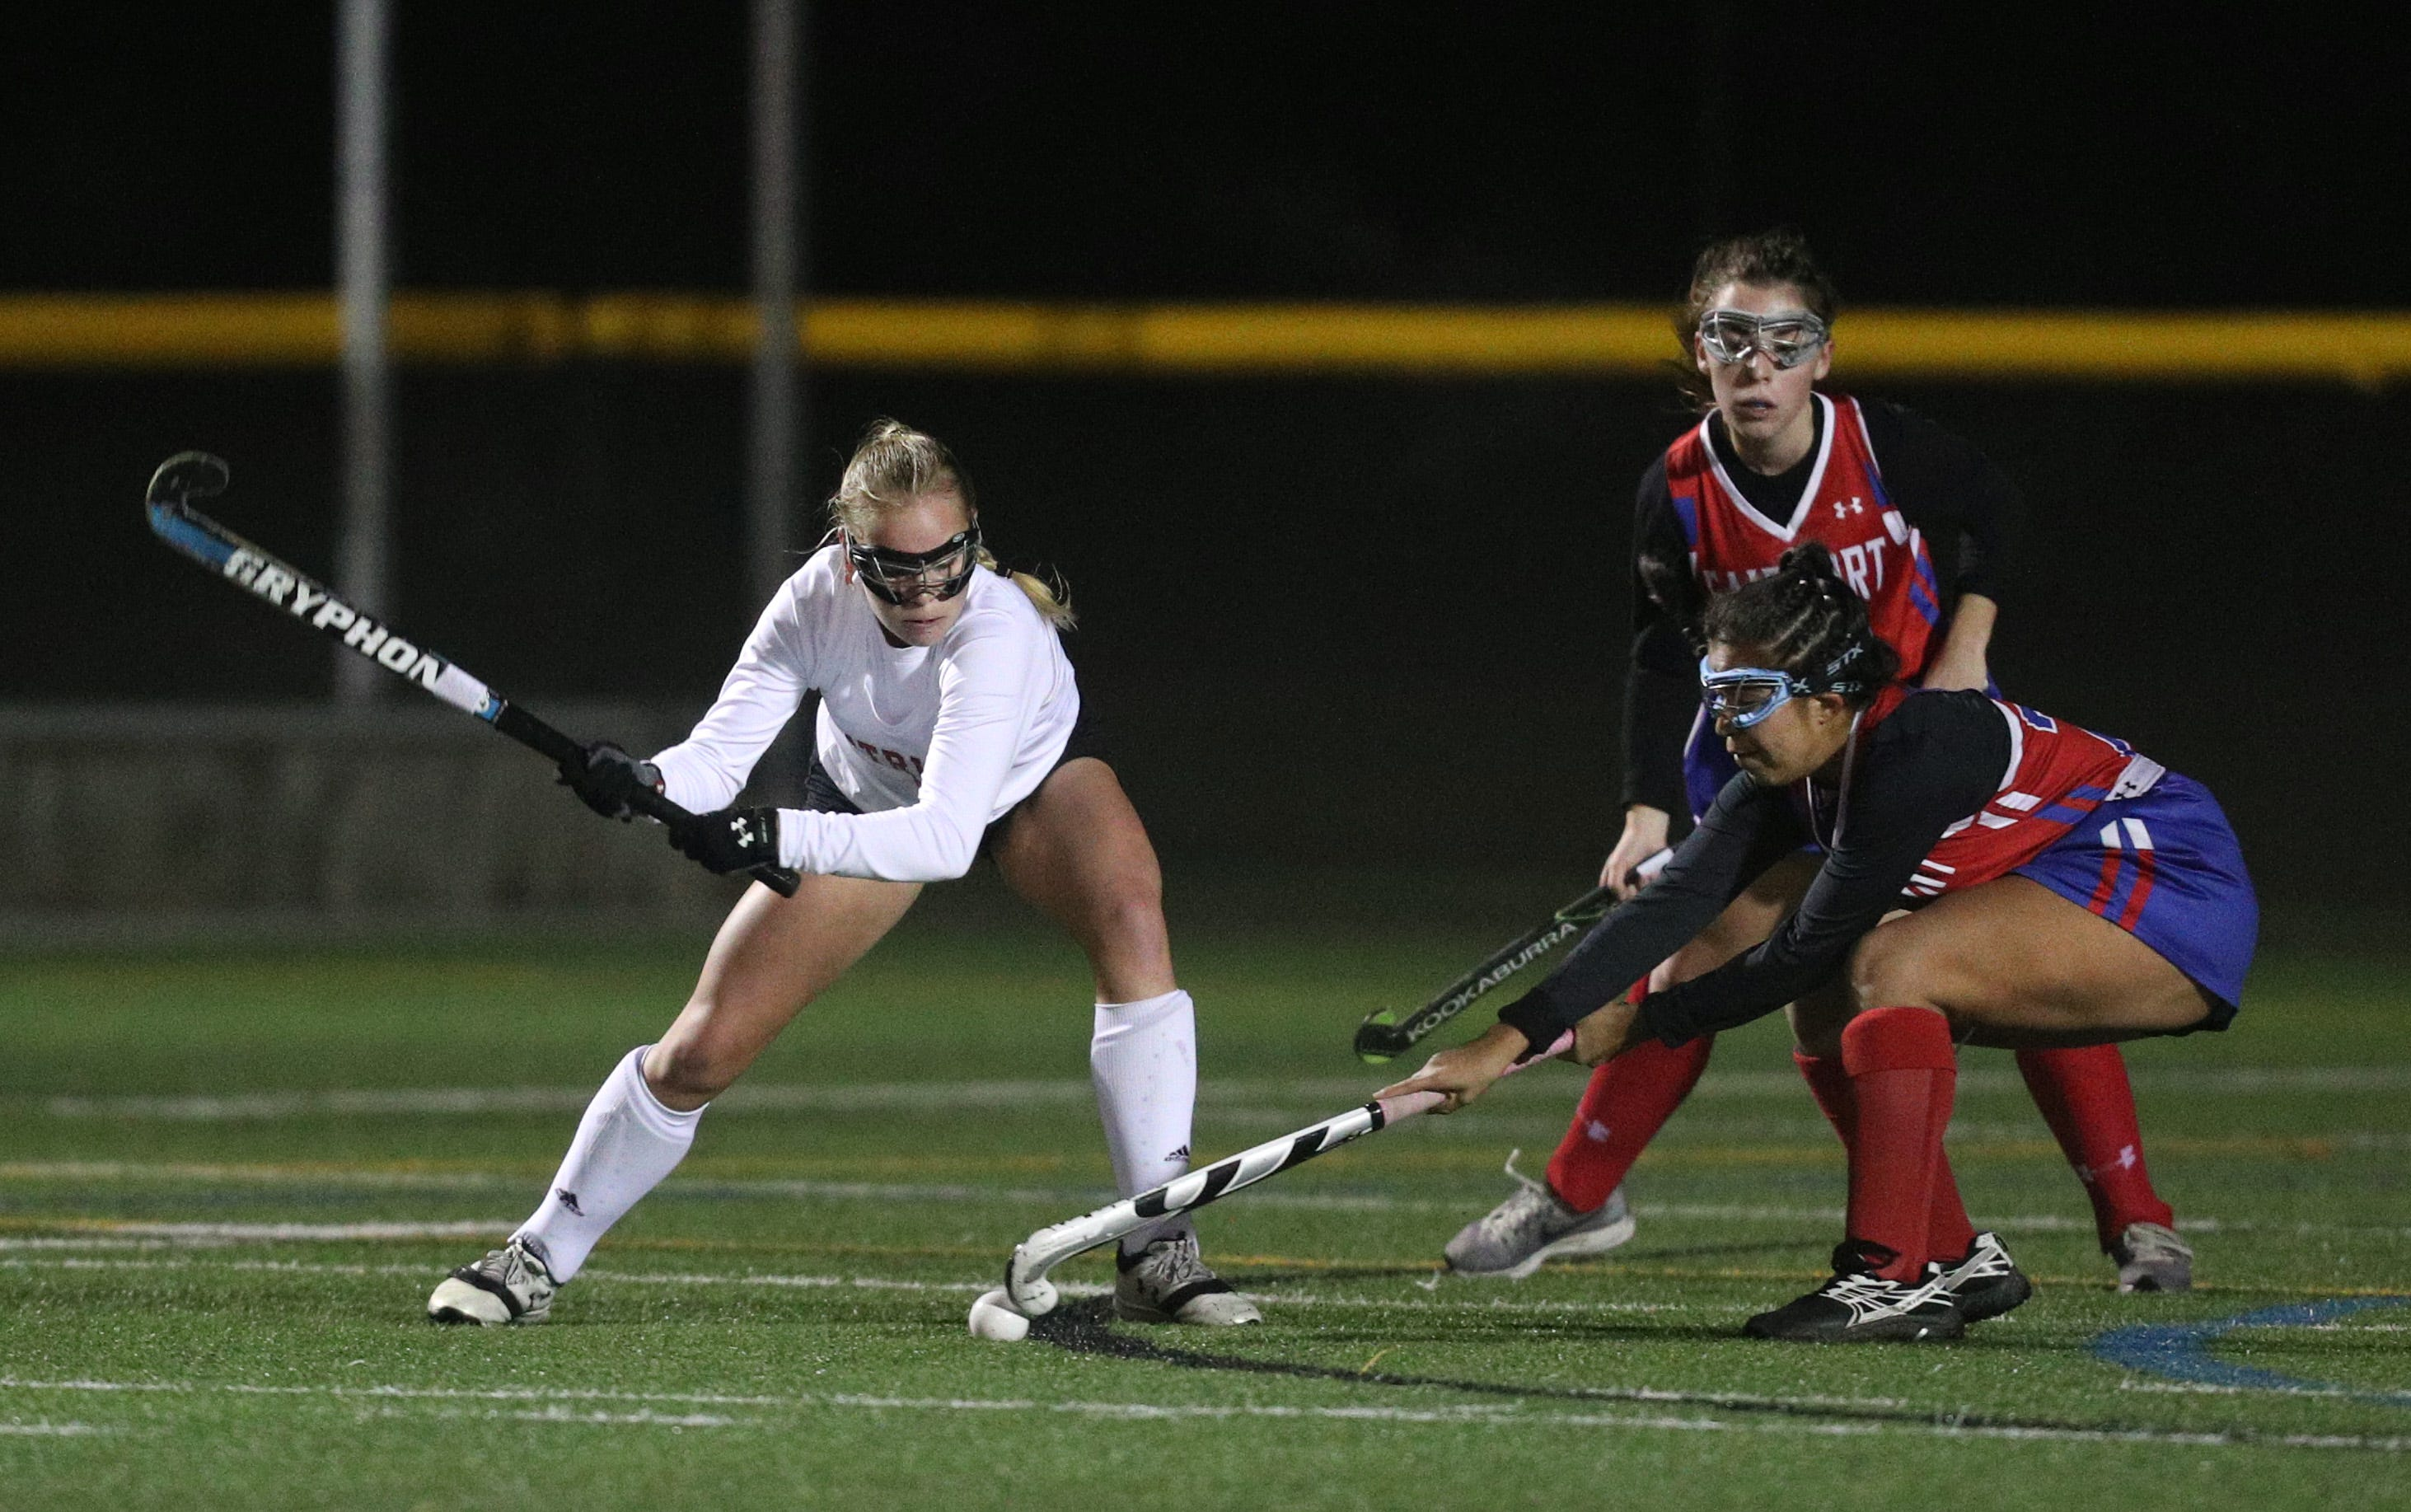 NY high school sports: Some teams can resume play Sept. 21